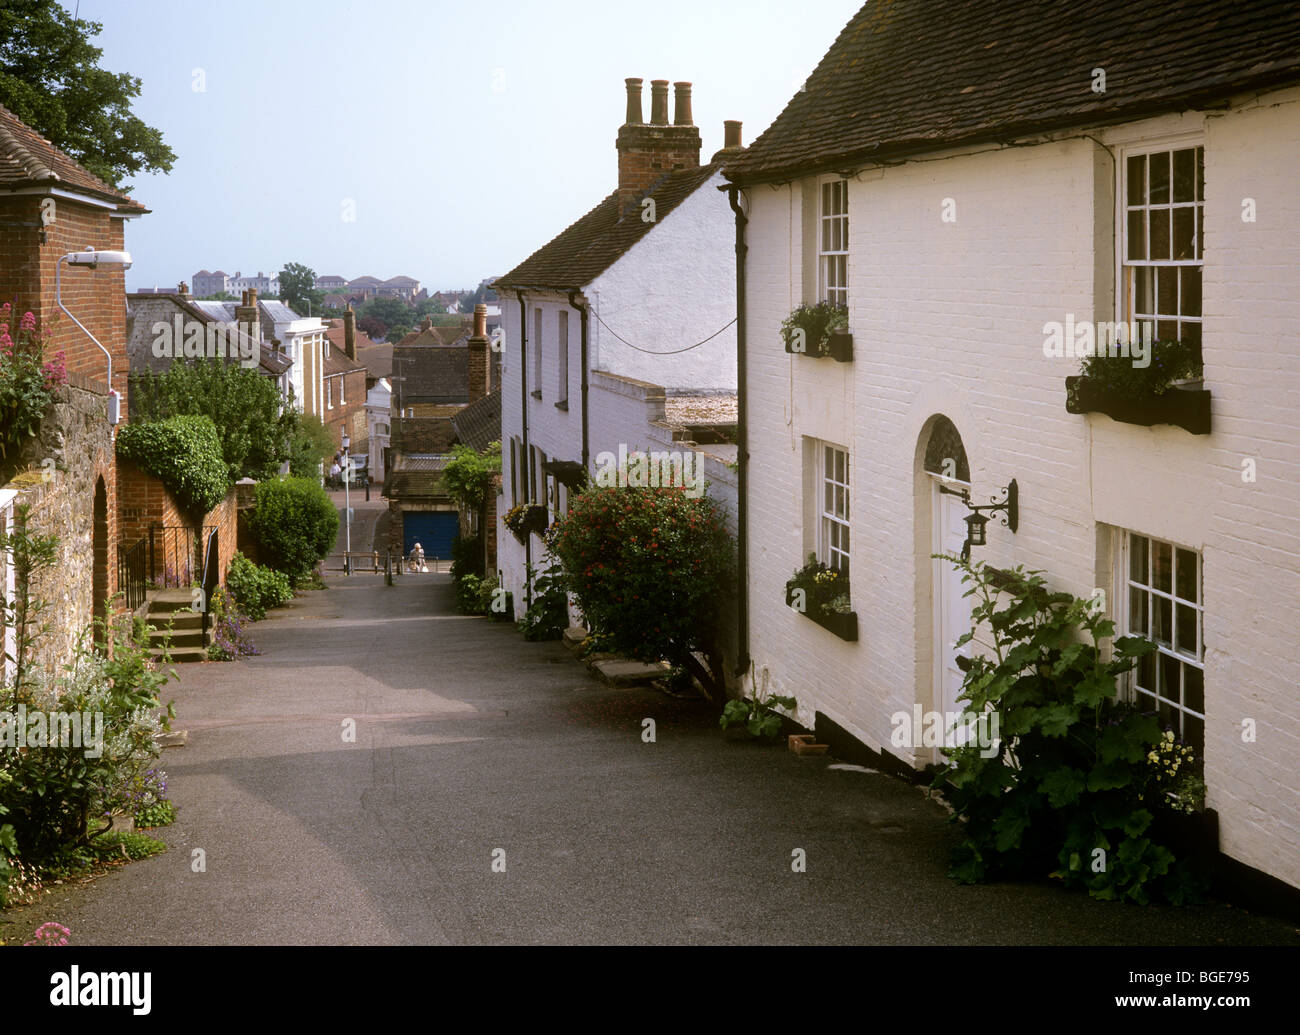 UK, England, Kent, Romney Marsh, Hythe, Church Lane - Stock Image